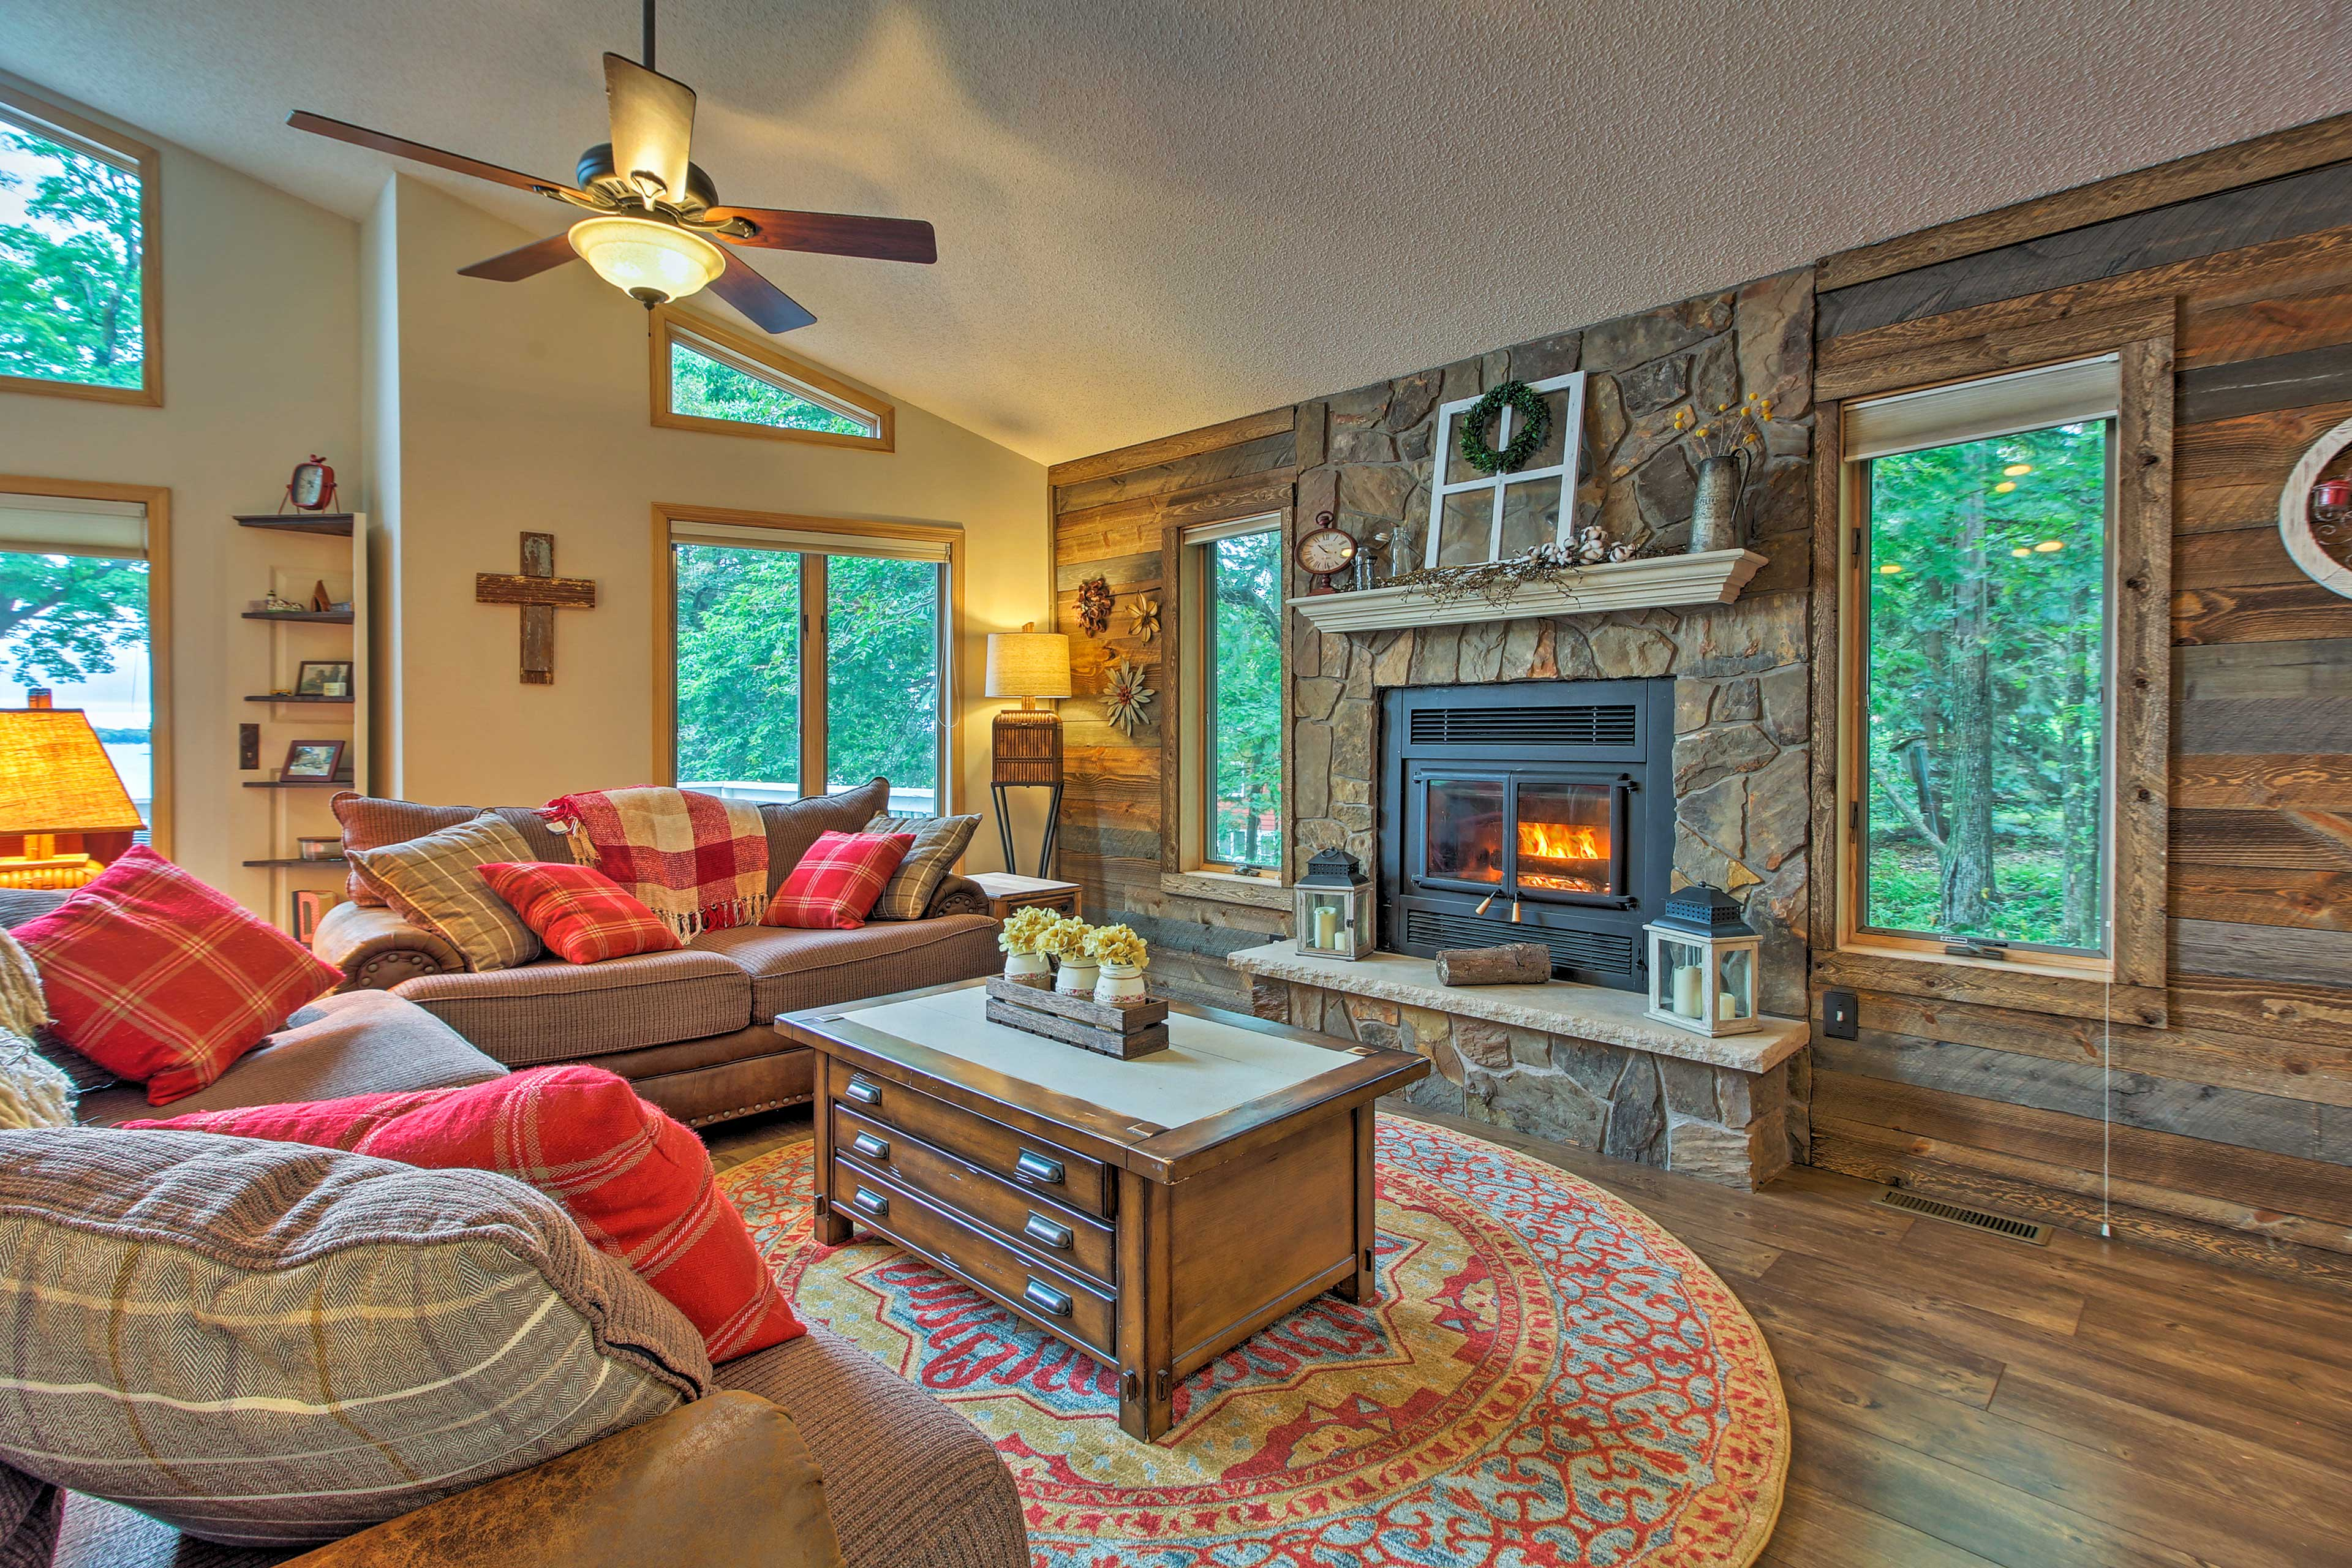 Warm up by the wood-burning fireplace on the main floor.